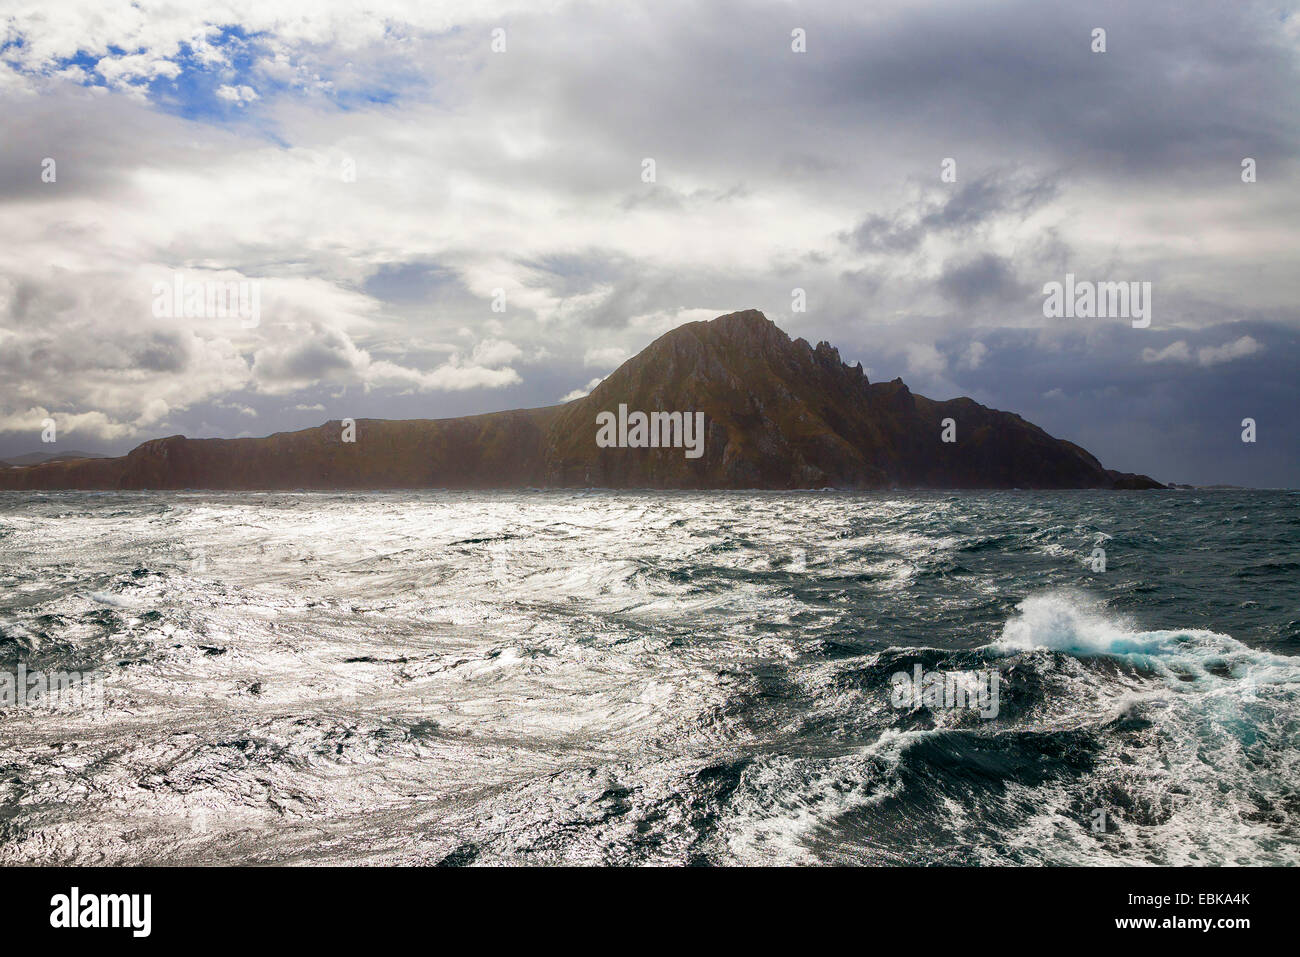 rough sea at Cape Horn, Chile, Cape Horn Island, Cape Hoorn National Park - Stock Image